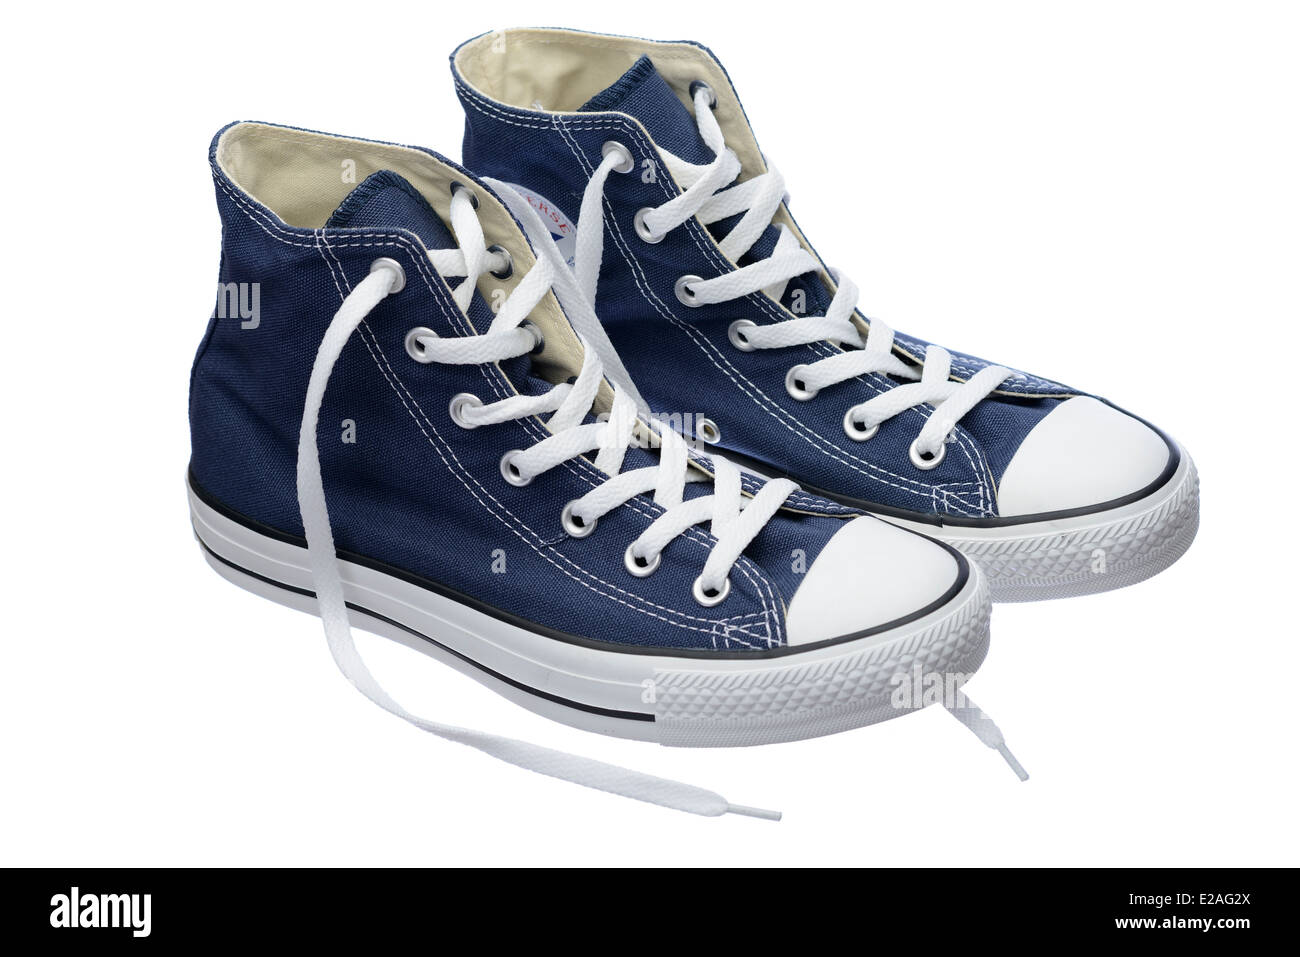 a3306129b5e Blue Converse Chuck Taylor All Star shoe pair Stock Photo  70302930 ...